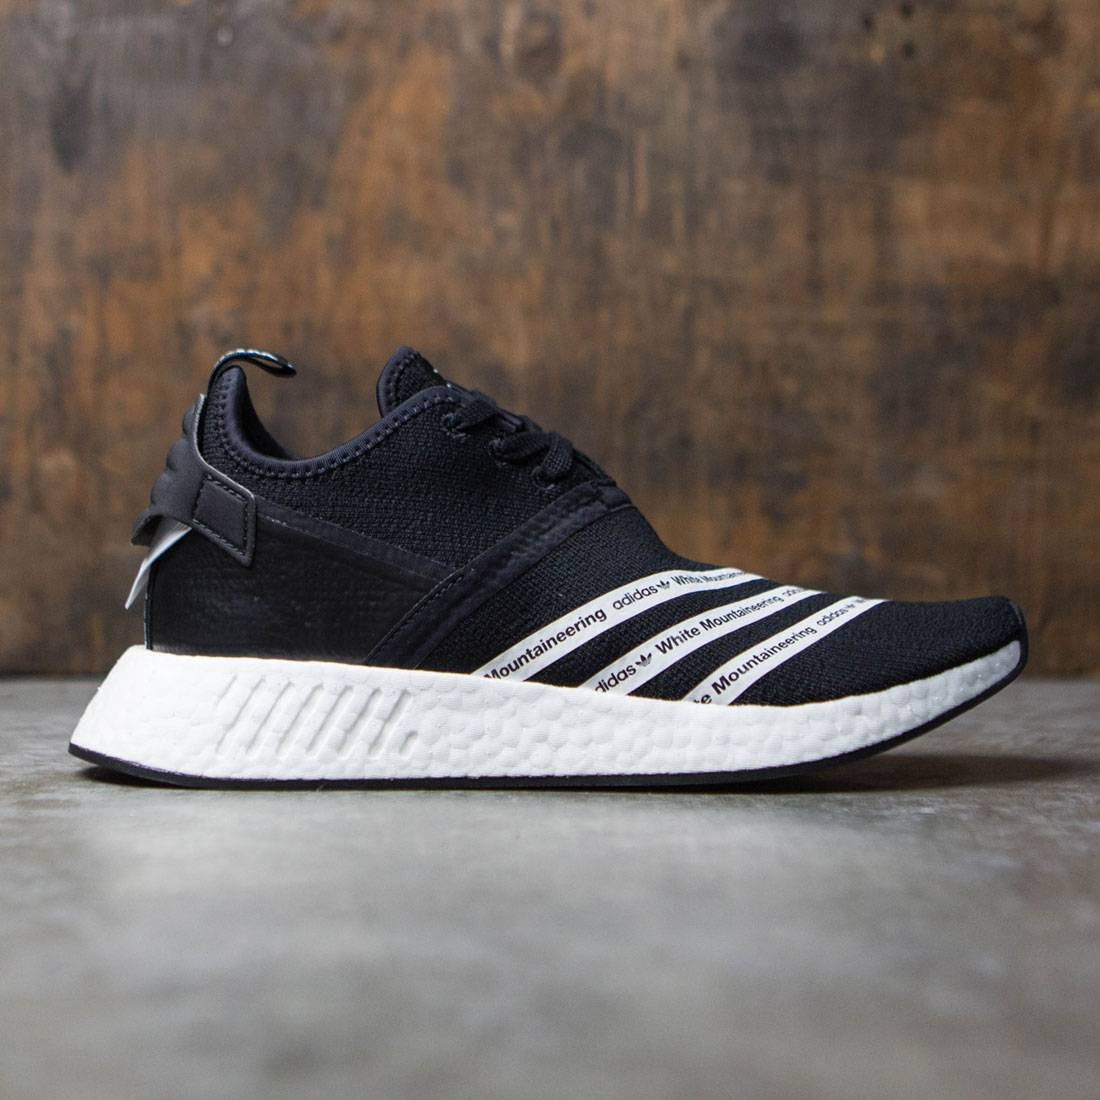 adidas nmd men black